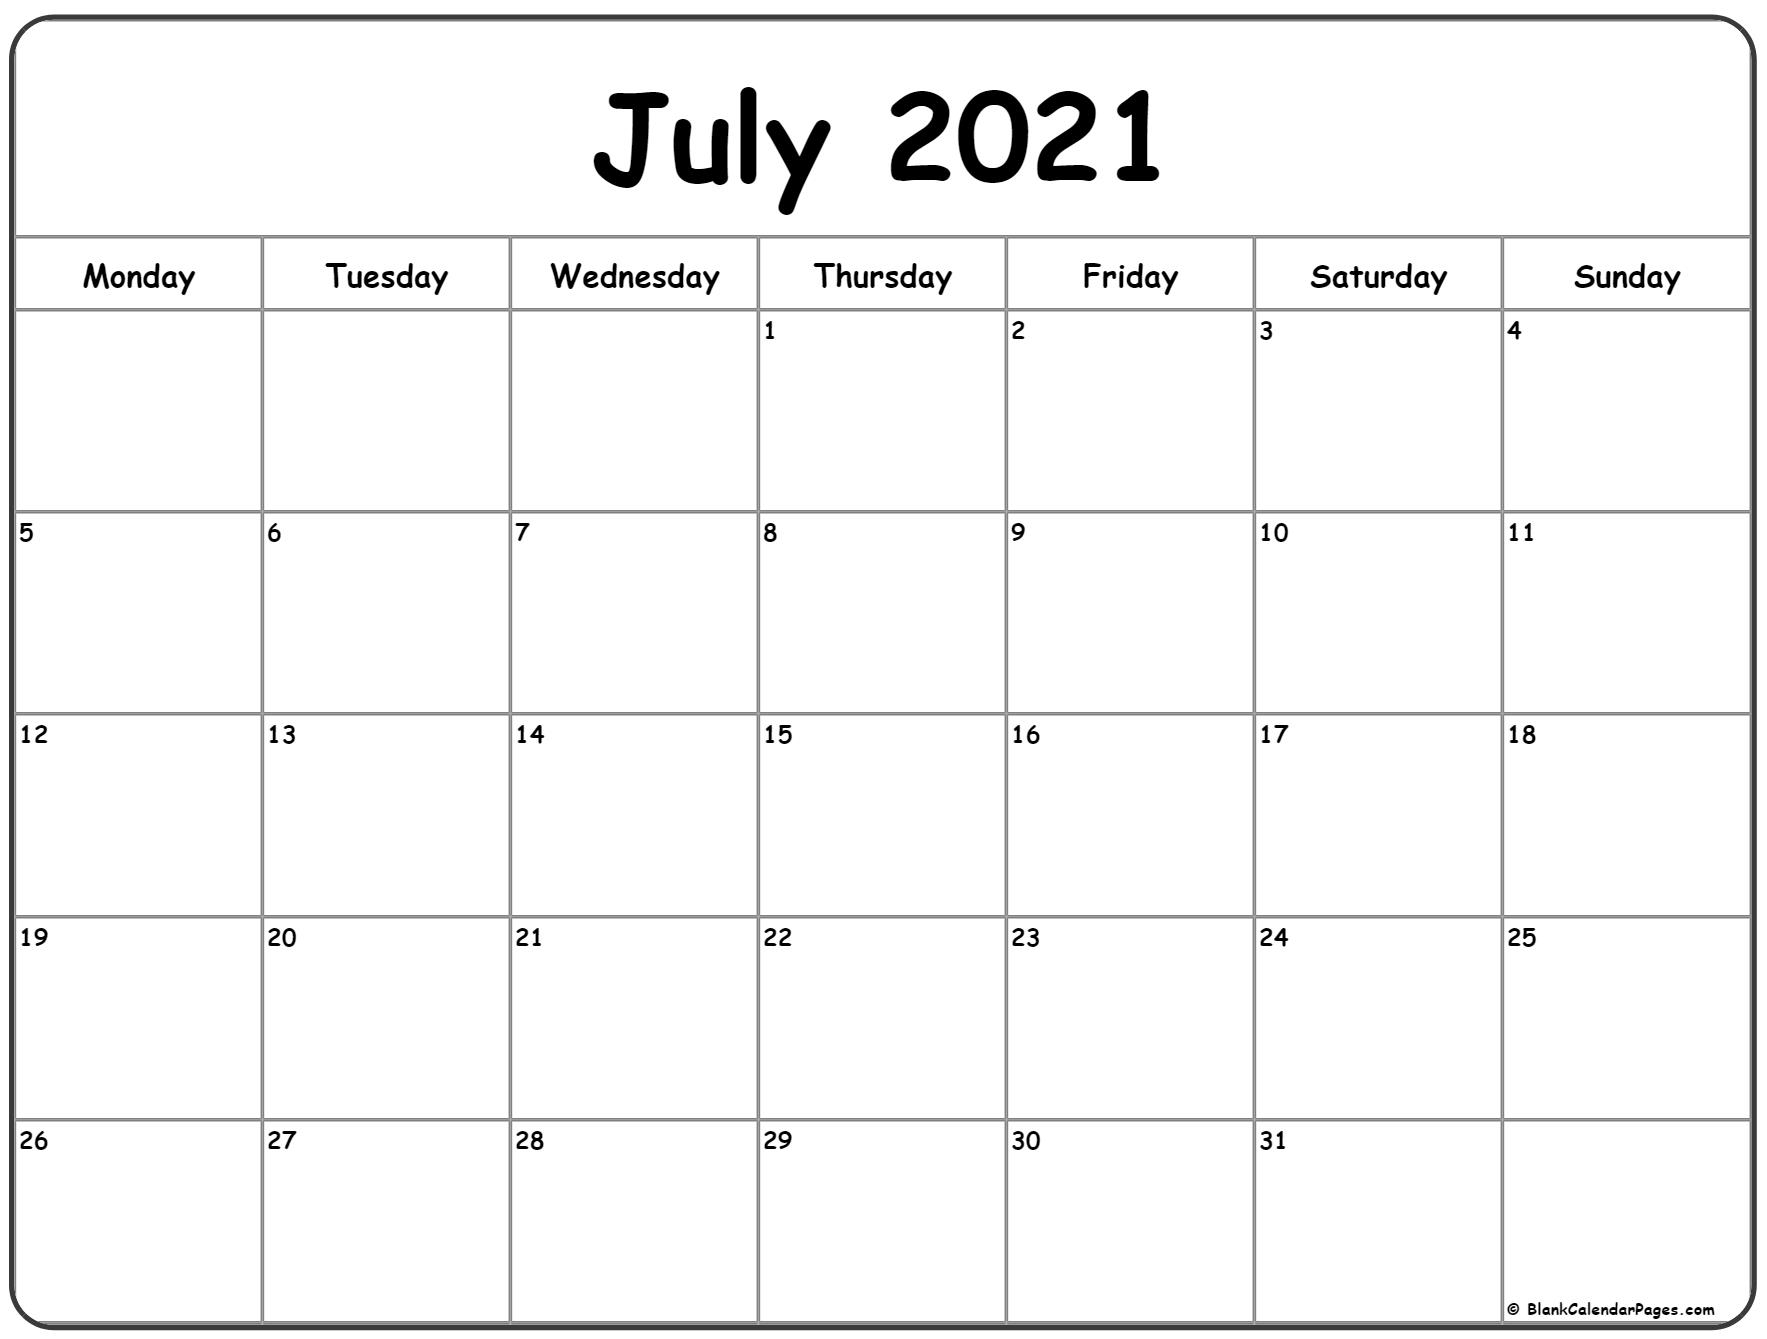 July 2021 Monday Calendar | Monday To Sunday